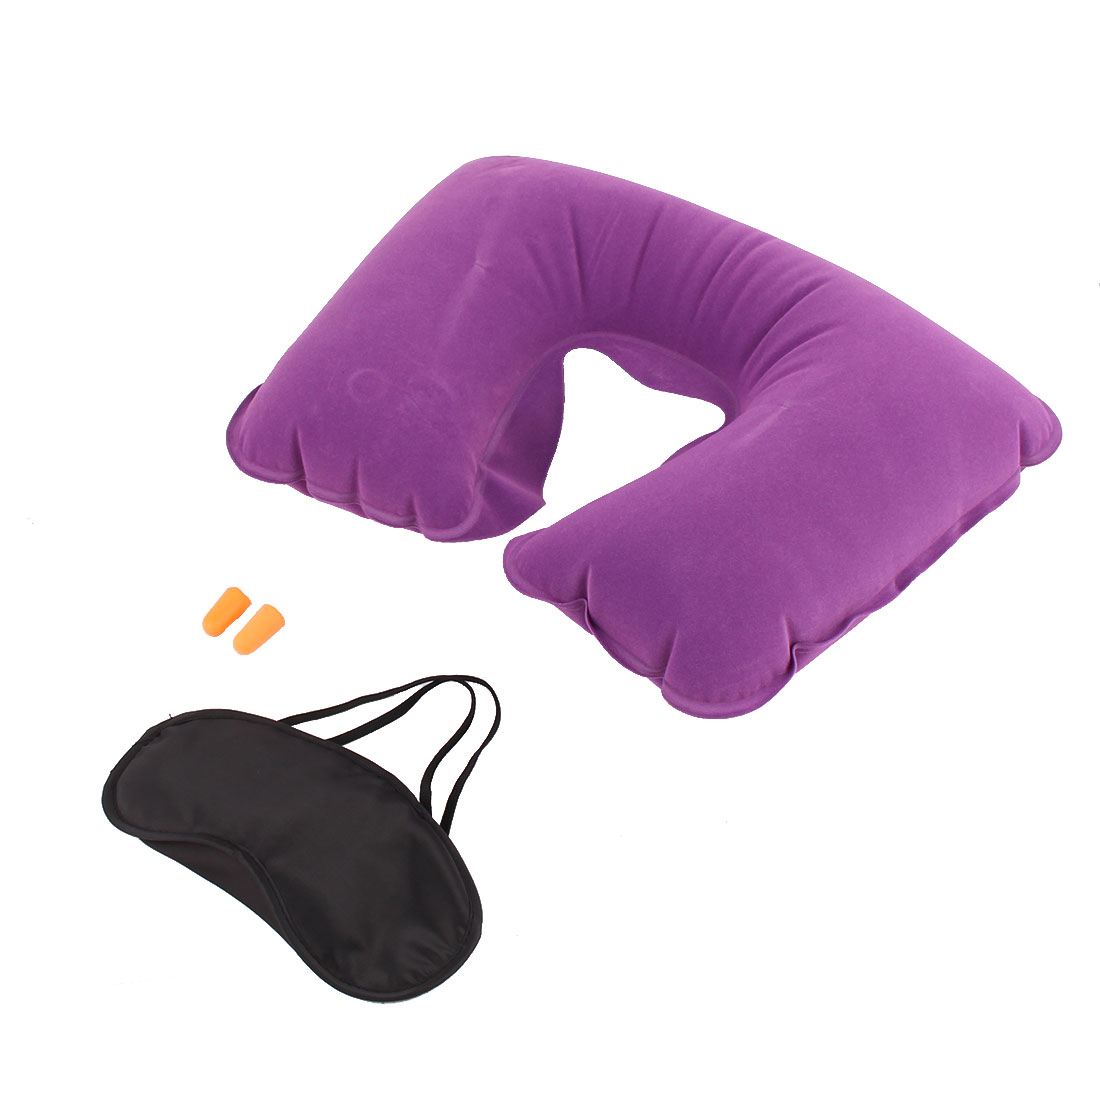 Travel Sleeping Rest Inflatable U Shaped Neck Pillow Eye Mask Earphone Purple 3 in 1